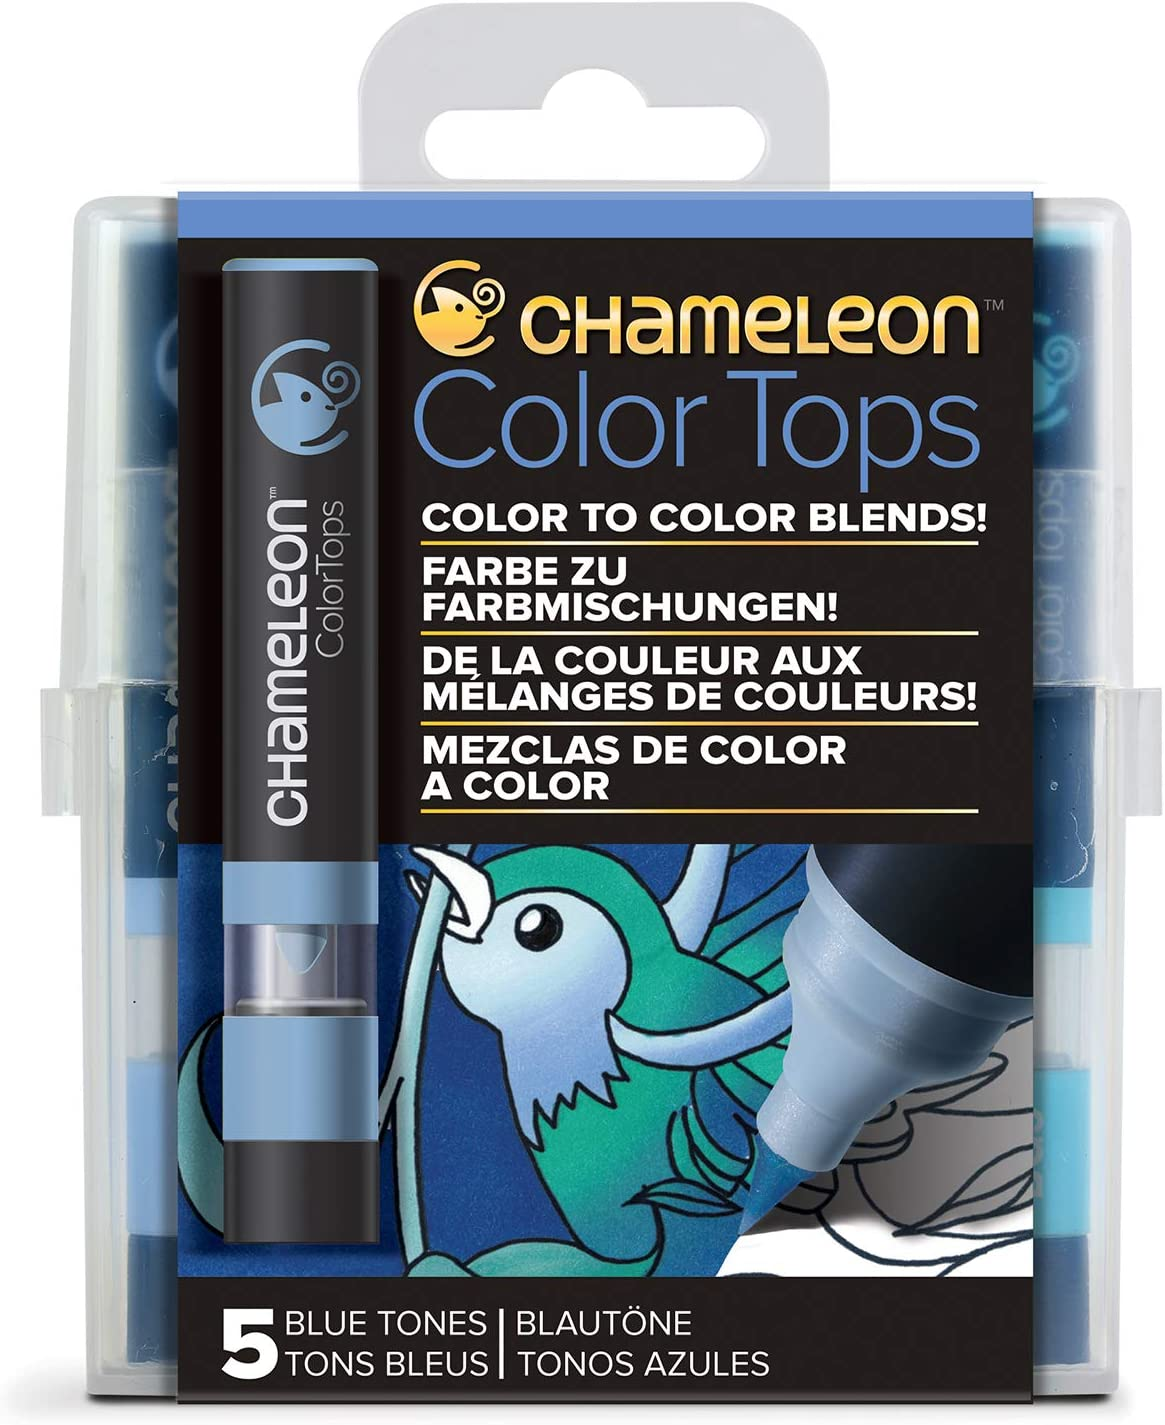 Chameleon Art Products, Blue Tones, Color Tops, Quick and Easy Blending - Set of 5